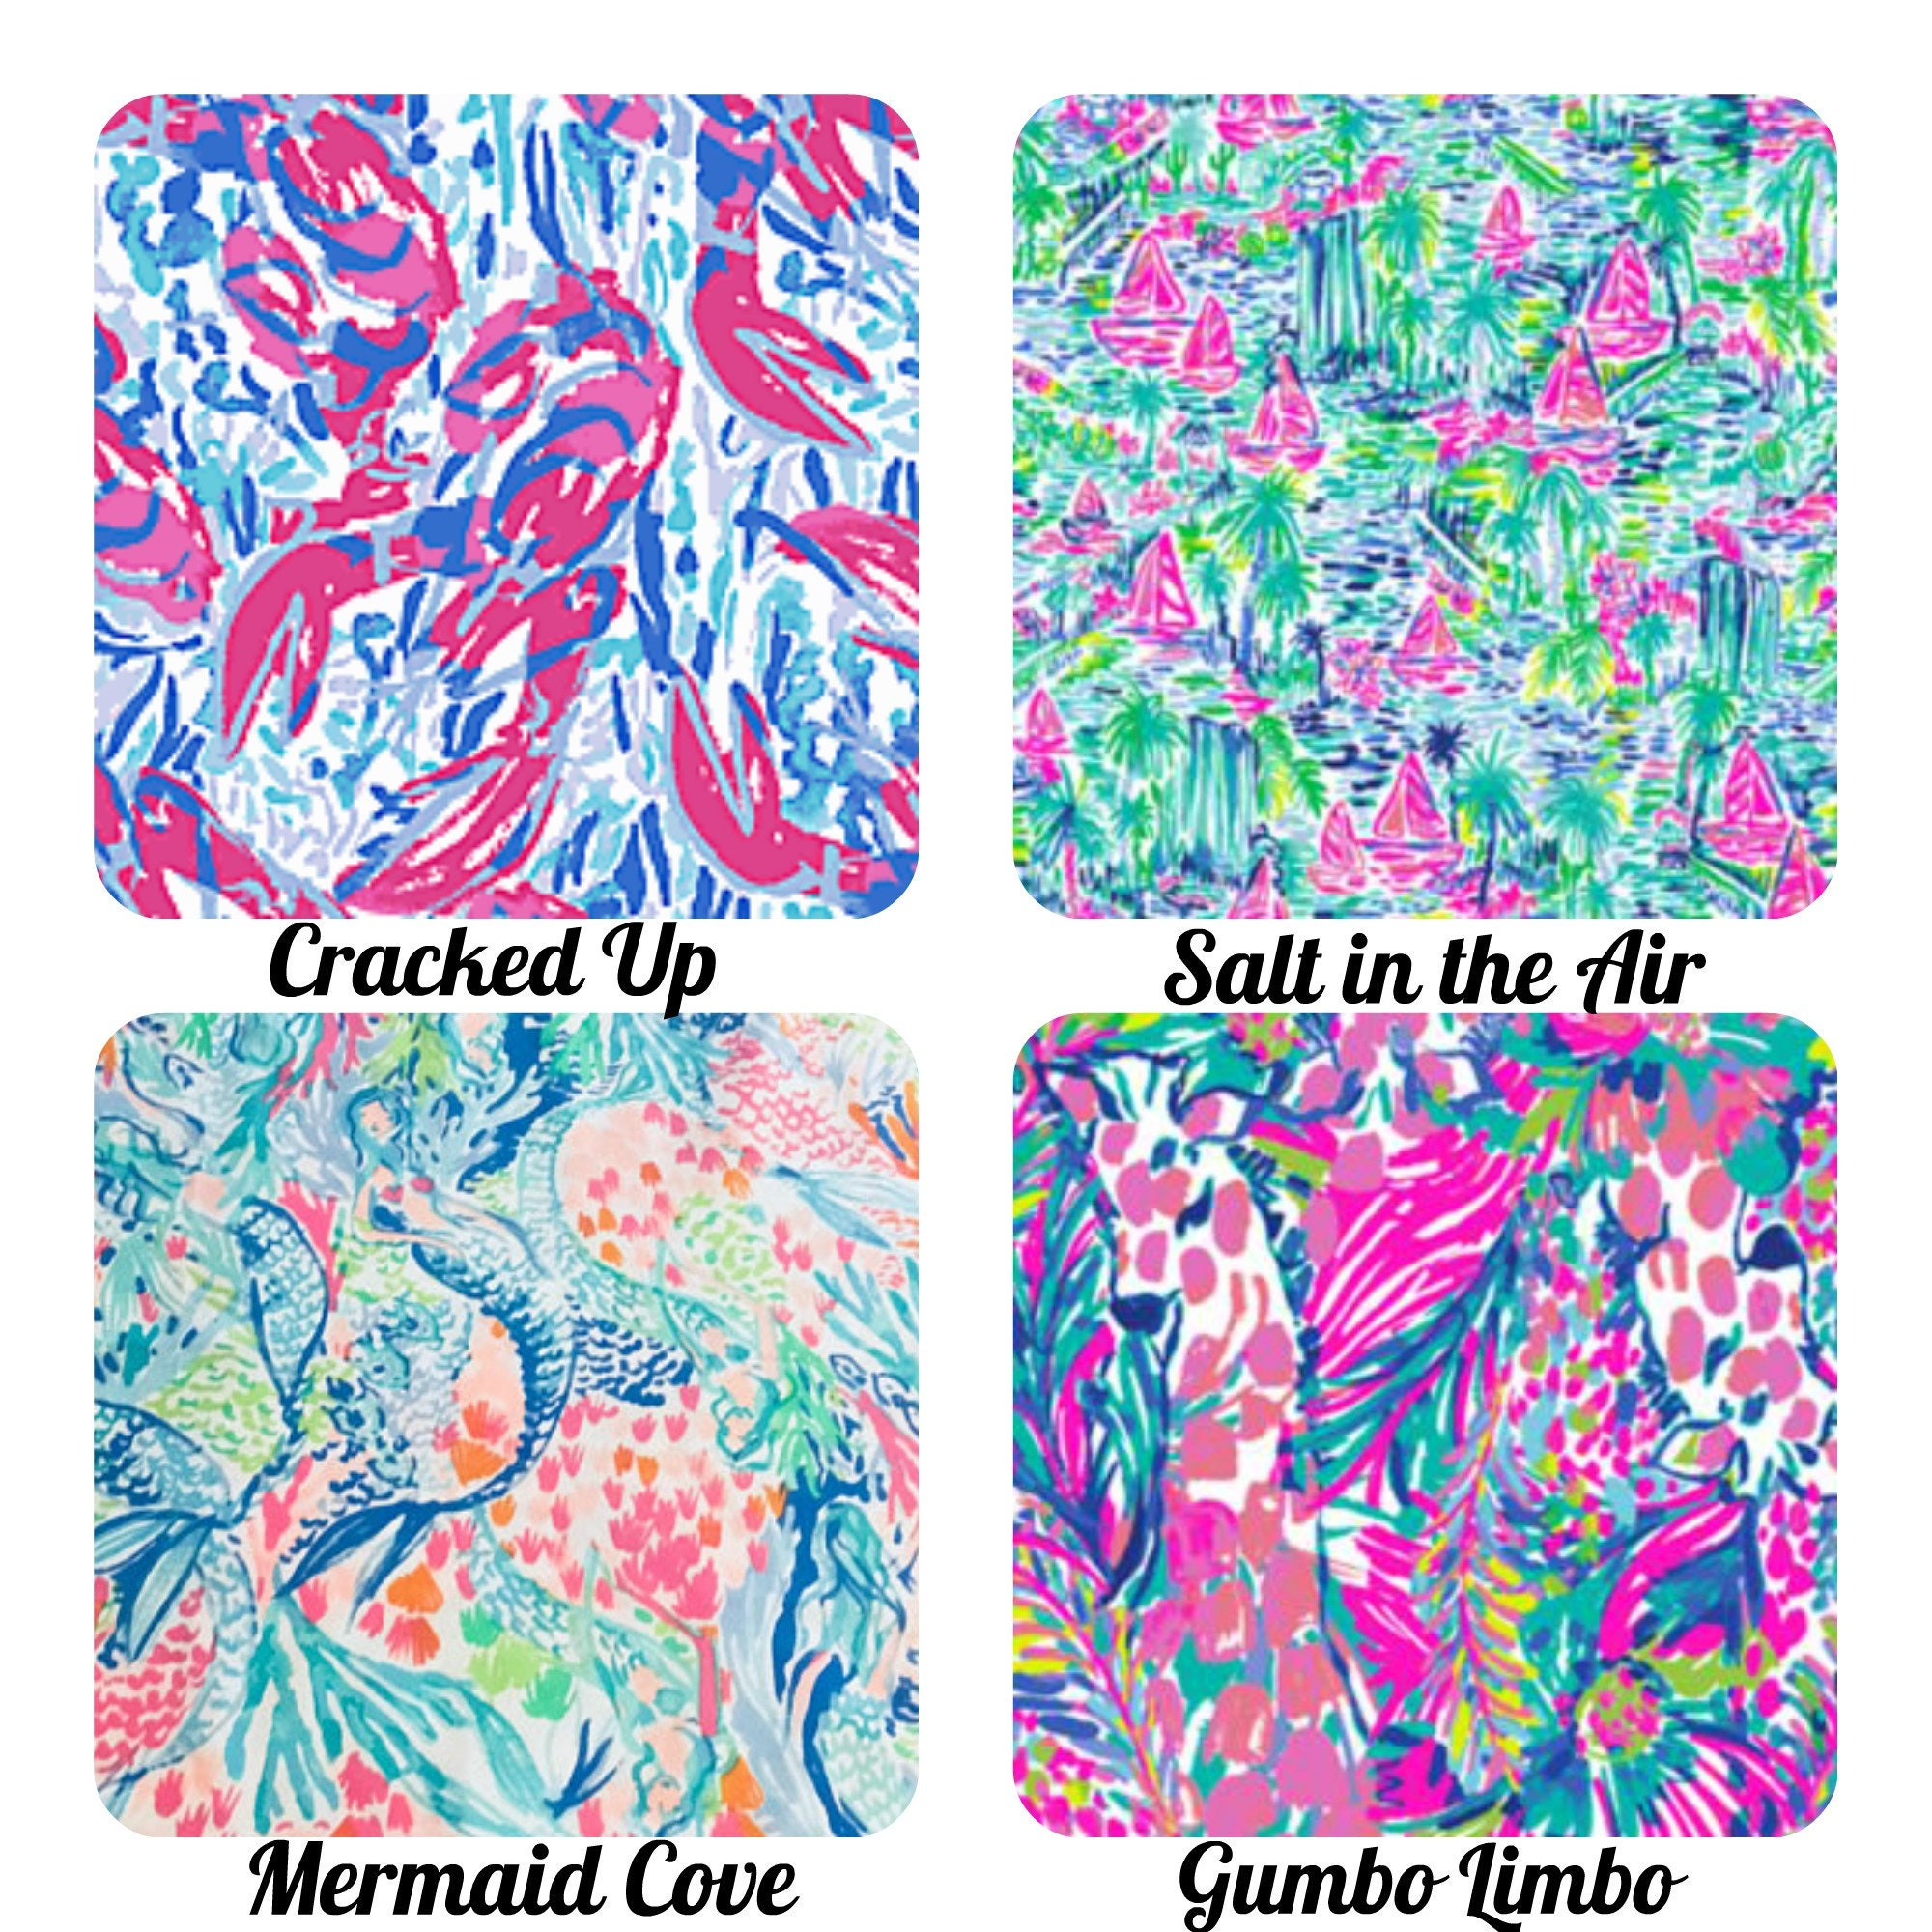 d0e167295b5 Lilly Pulitzer Inspired Flamingo Decal ~ Yeti Decal ~ Lilly Car Decal ~  Lilly Decal ~ Lilly Sticker